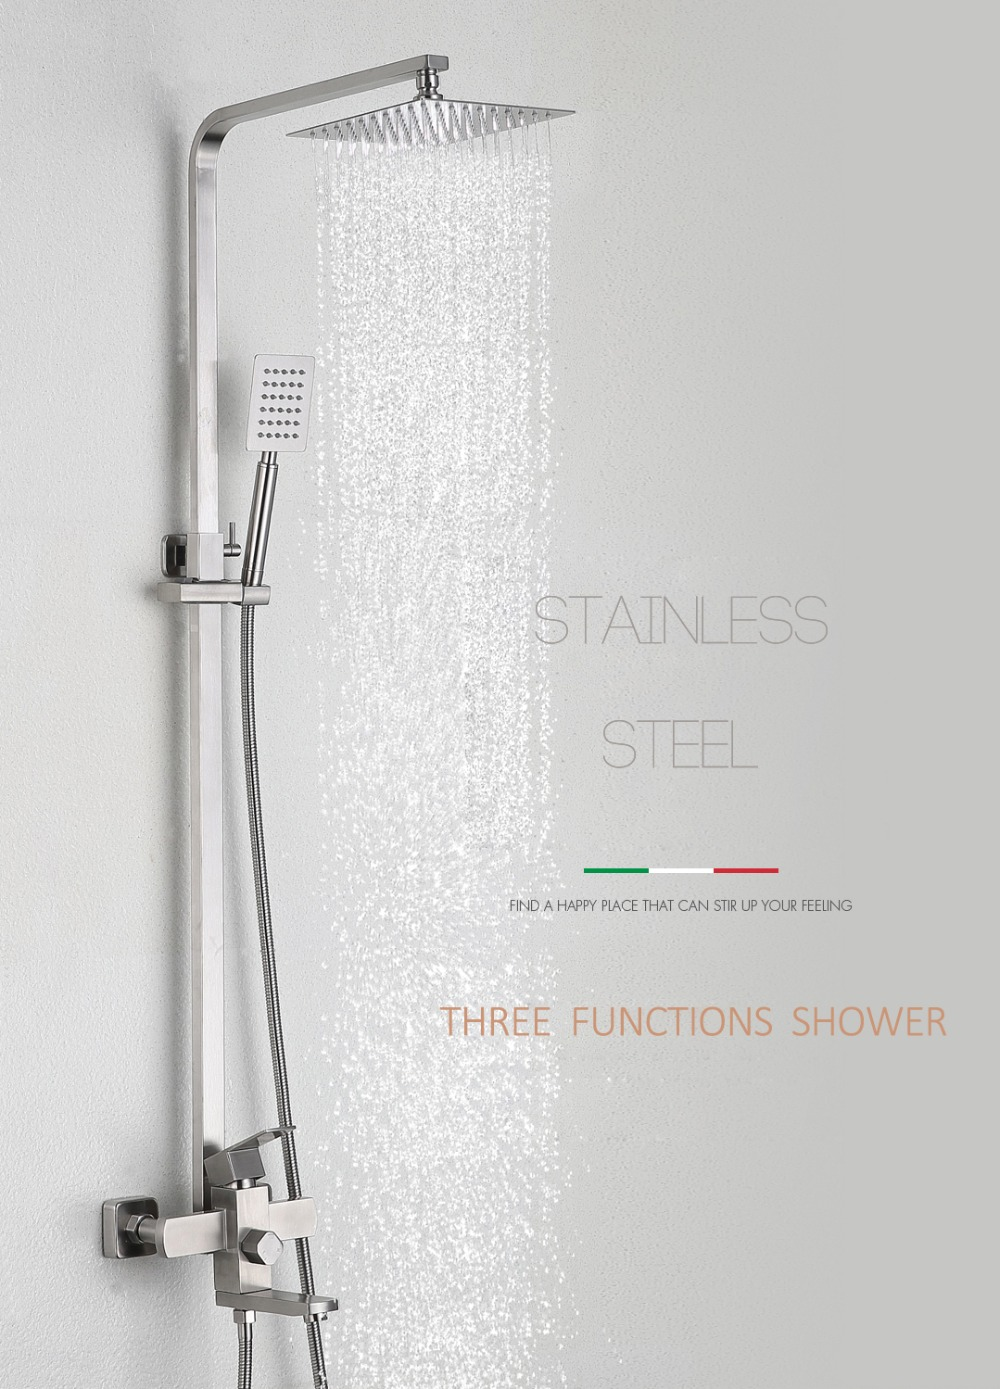 Quyanre Brushed Nickel Rainfall Shower System Faucets Ultrathin Shower Head Hot Cold Single Handle Mixer Swivel Tub Shower Kit